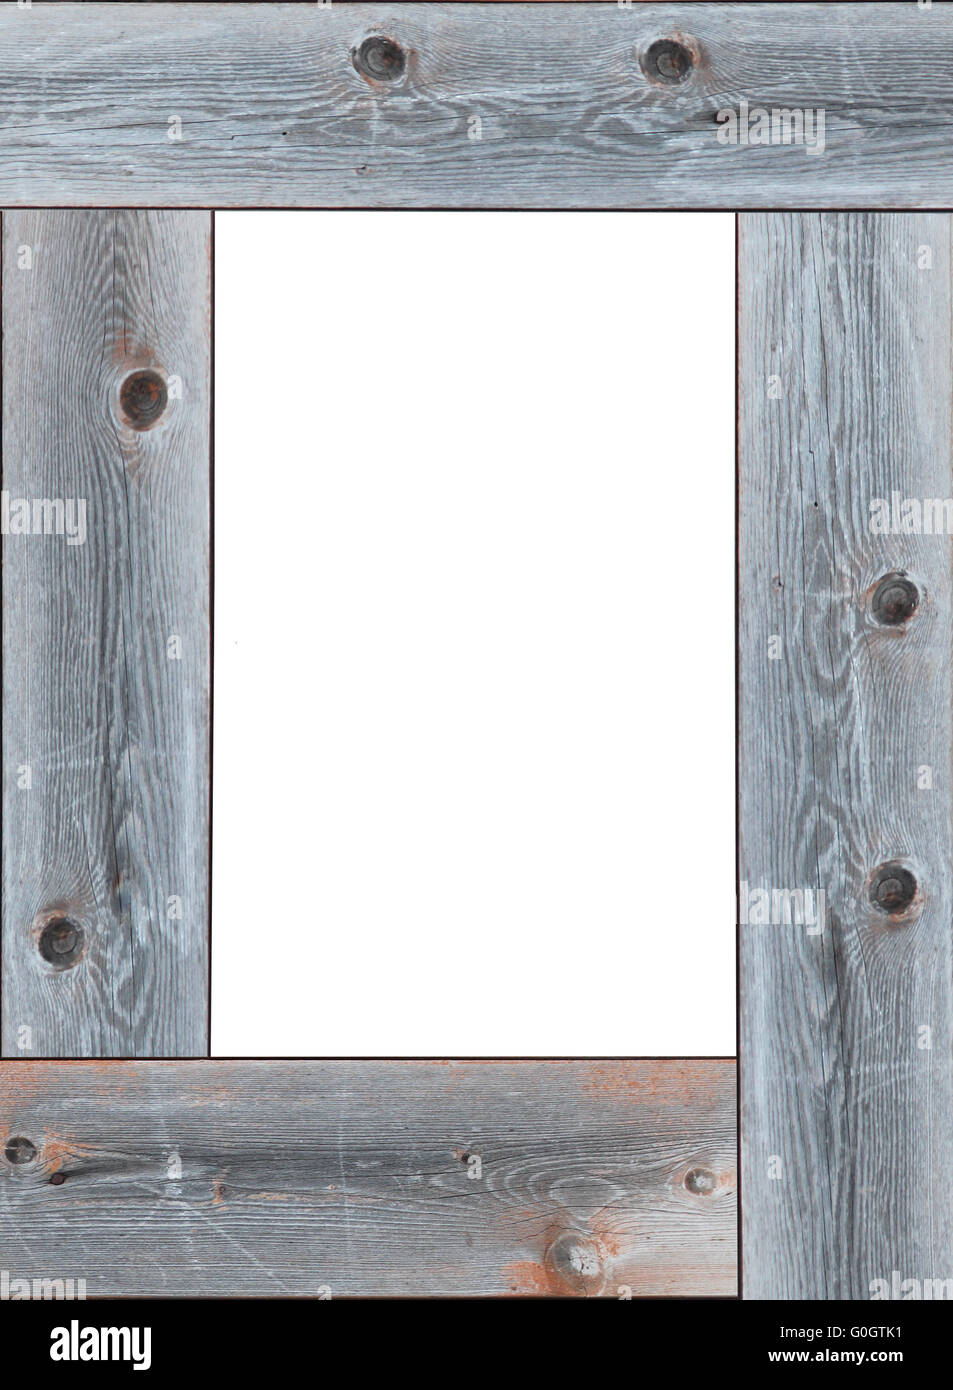 wooden frame with empty white place for text - Stock Image